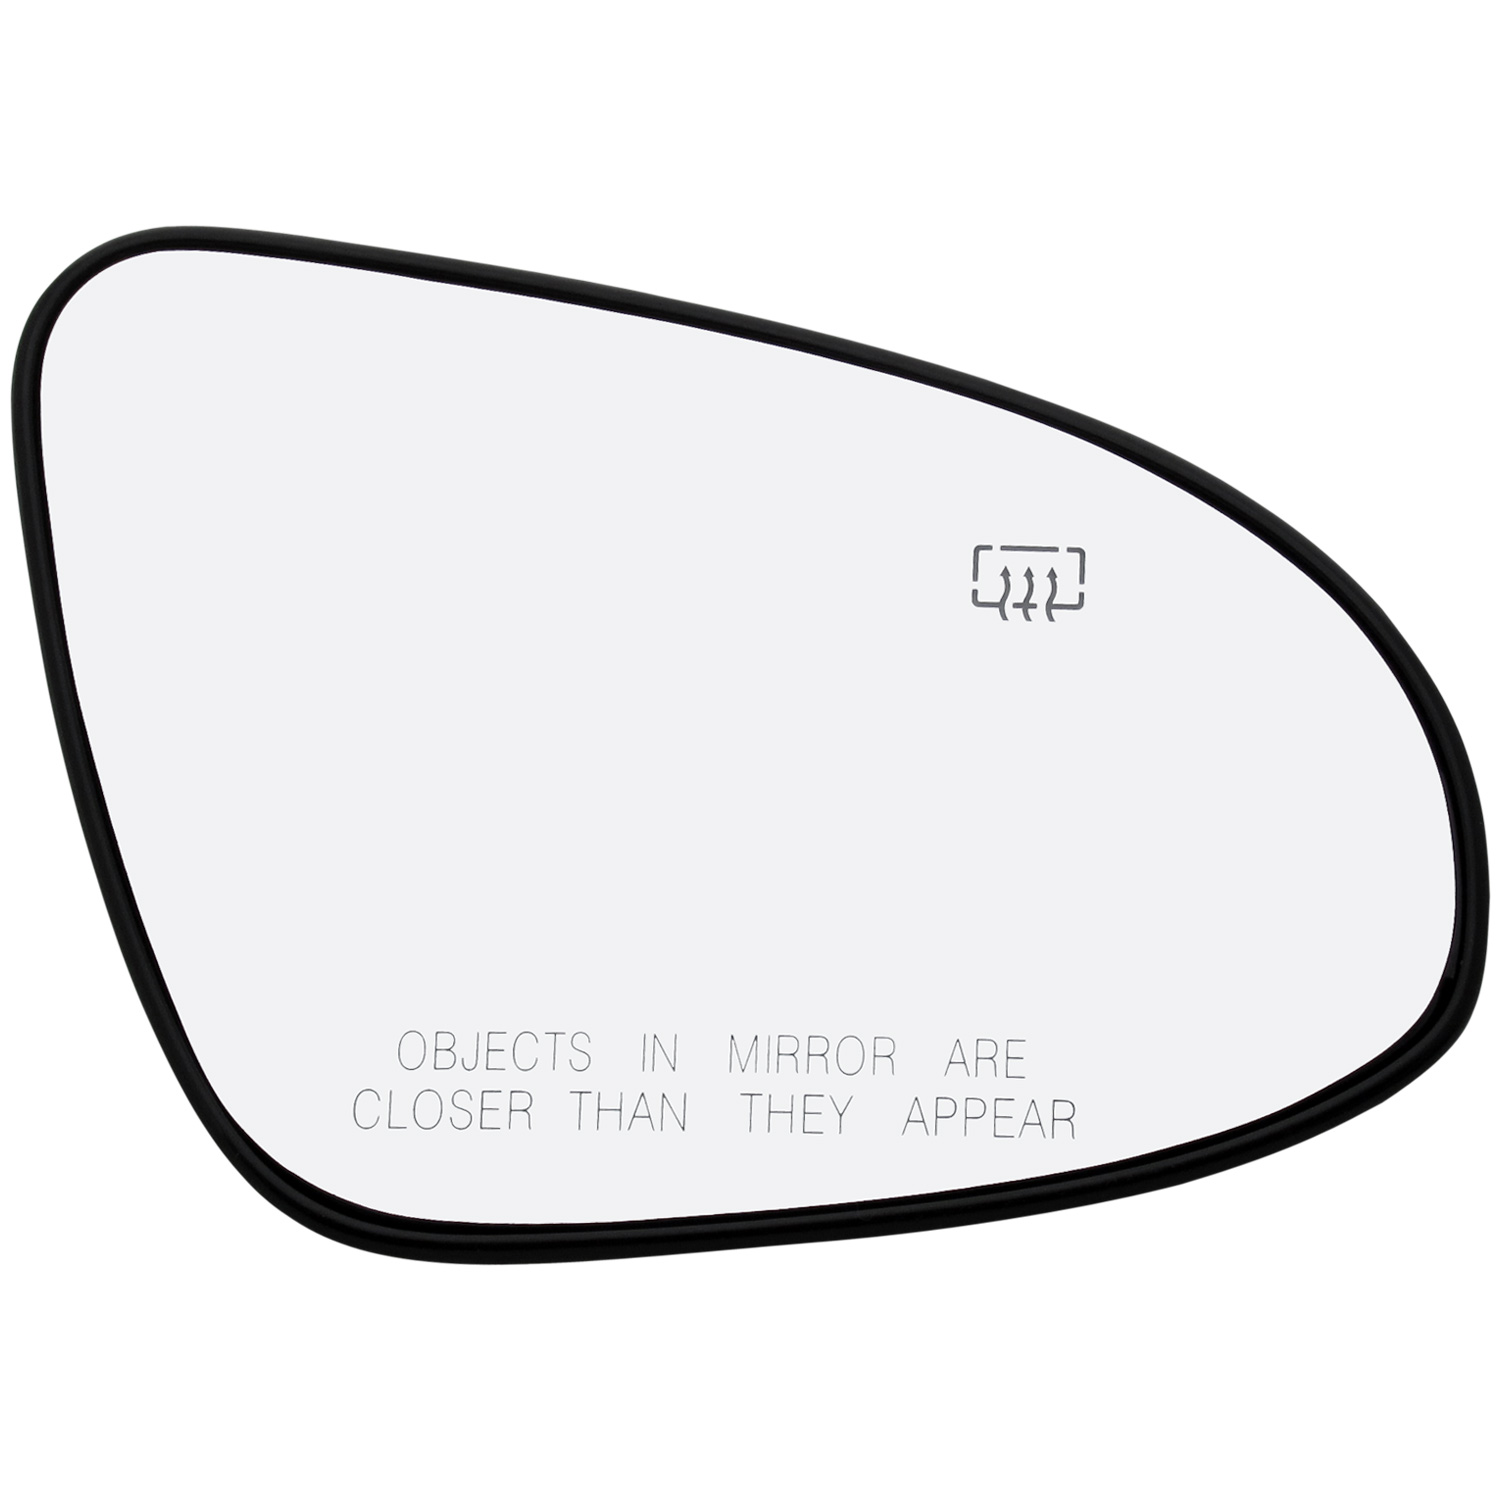 New Replacement Driver Side Mirror Heated Glass W Backing Compatible With 2014 2015 2016 2017 Toyota Corolla Sold By Rugged TUFF